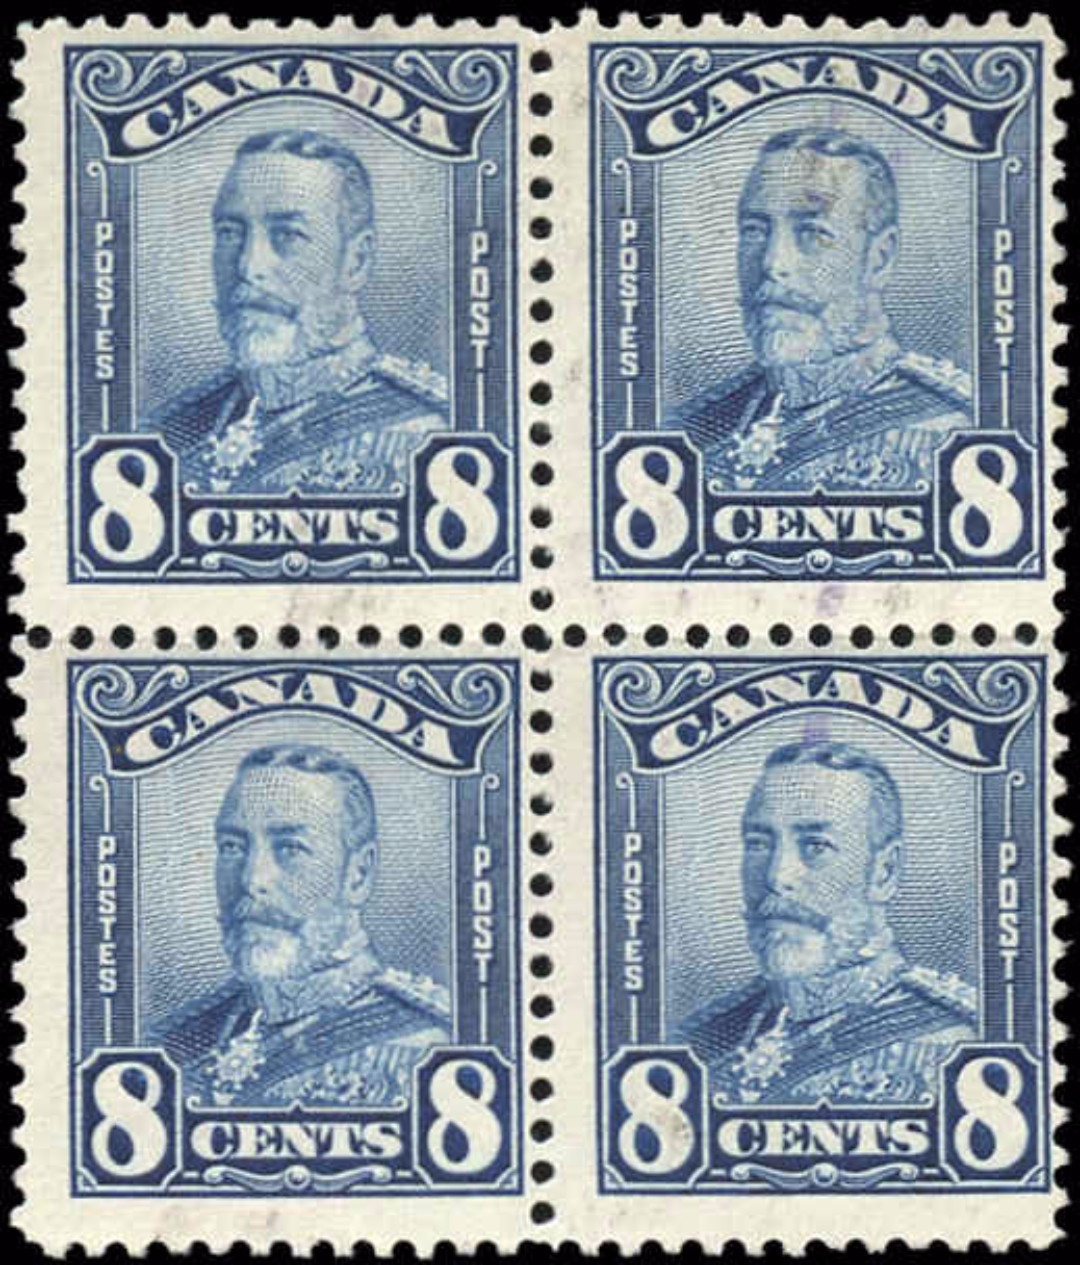 Canada #171, Arch/Leaf Issue, F, Used